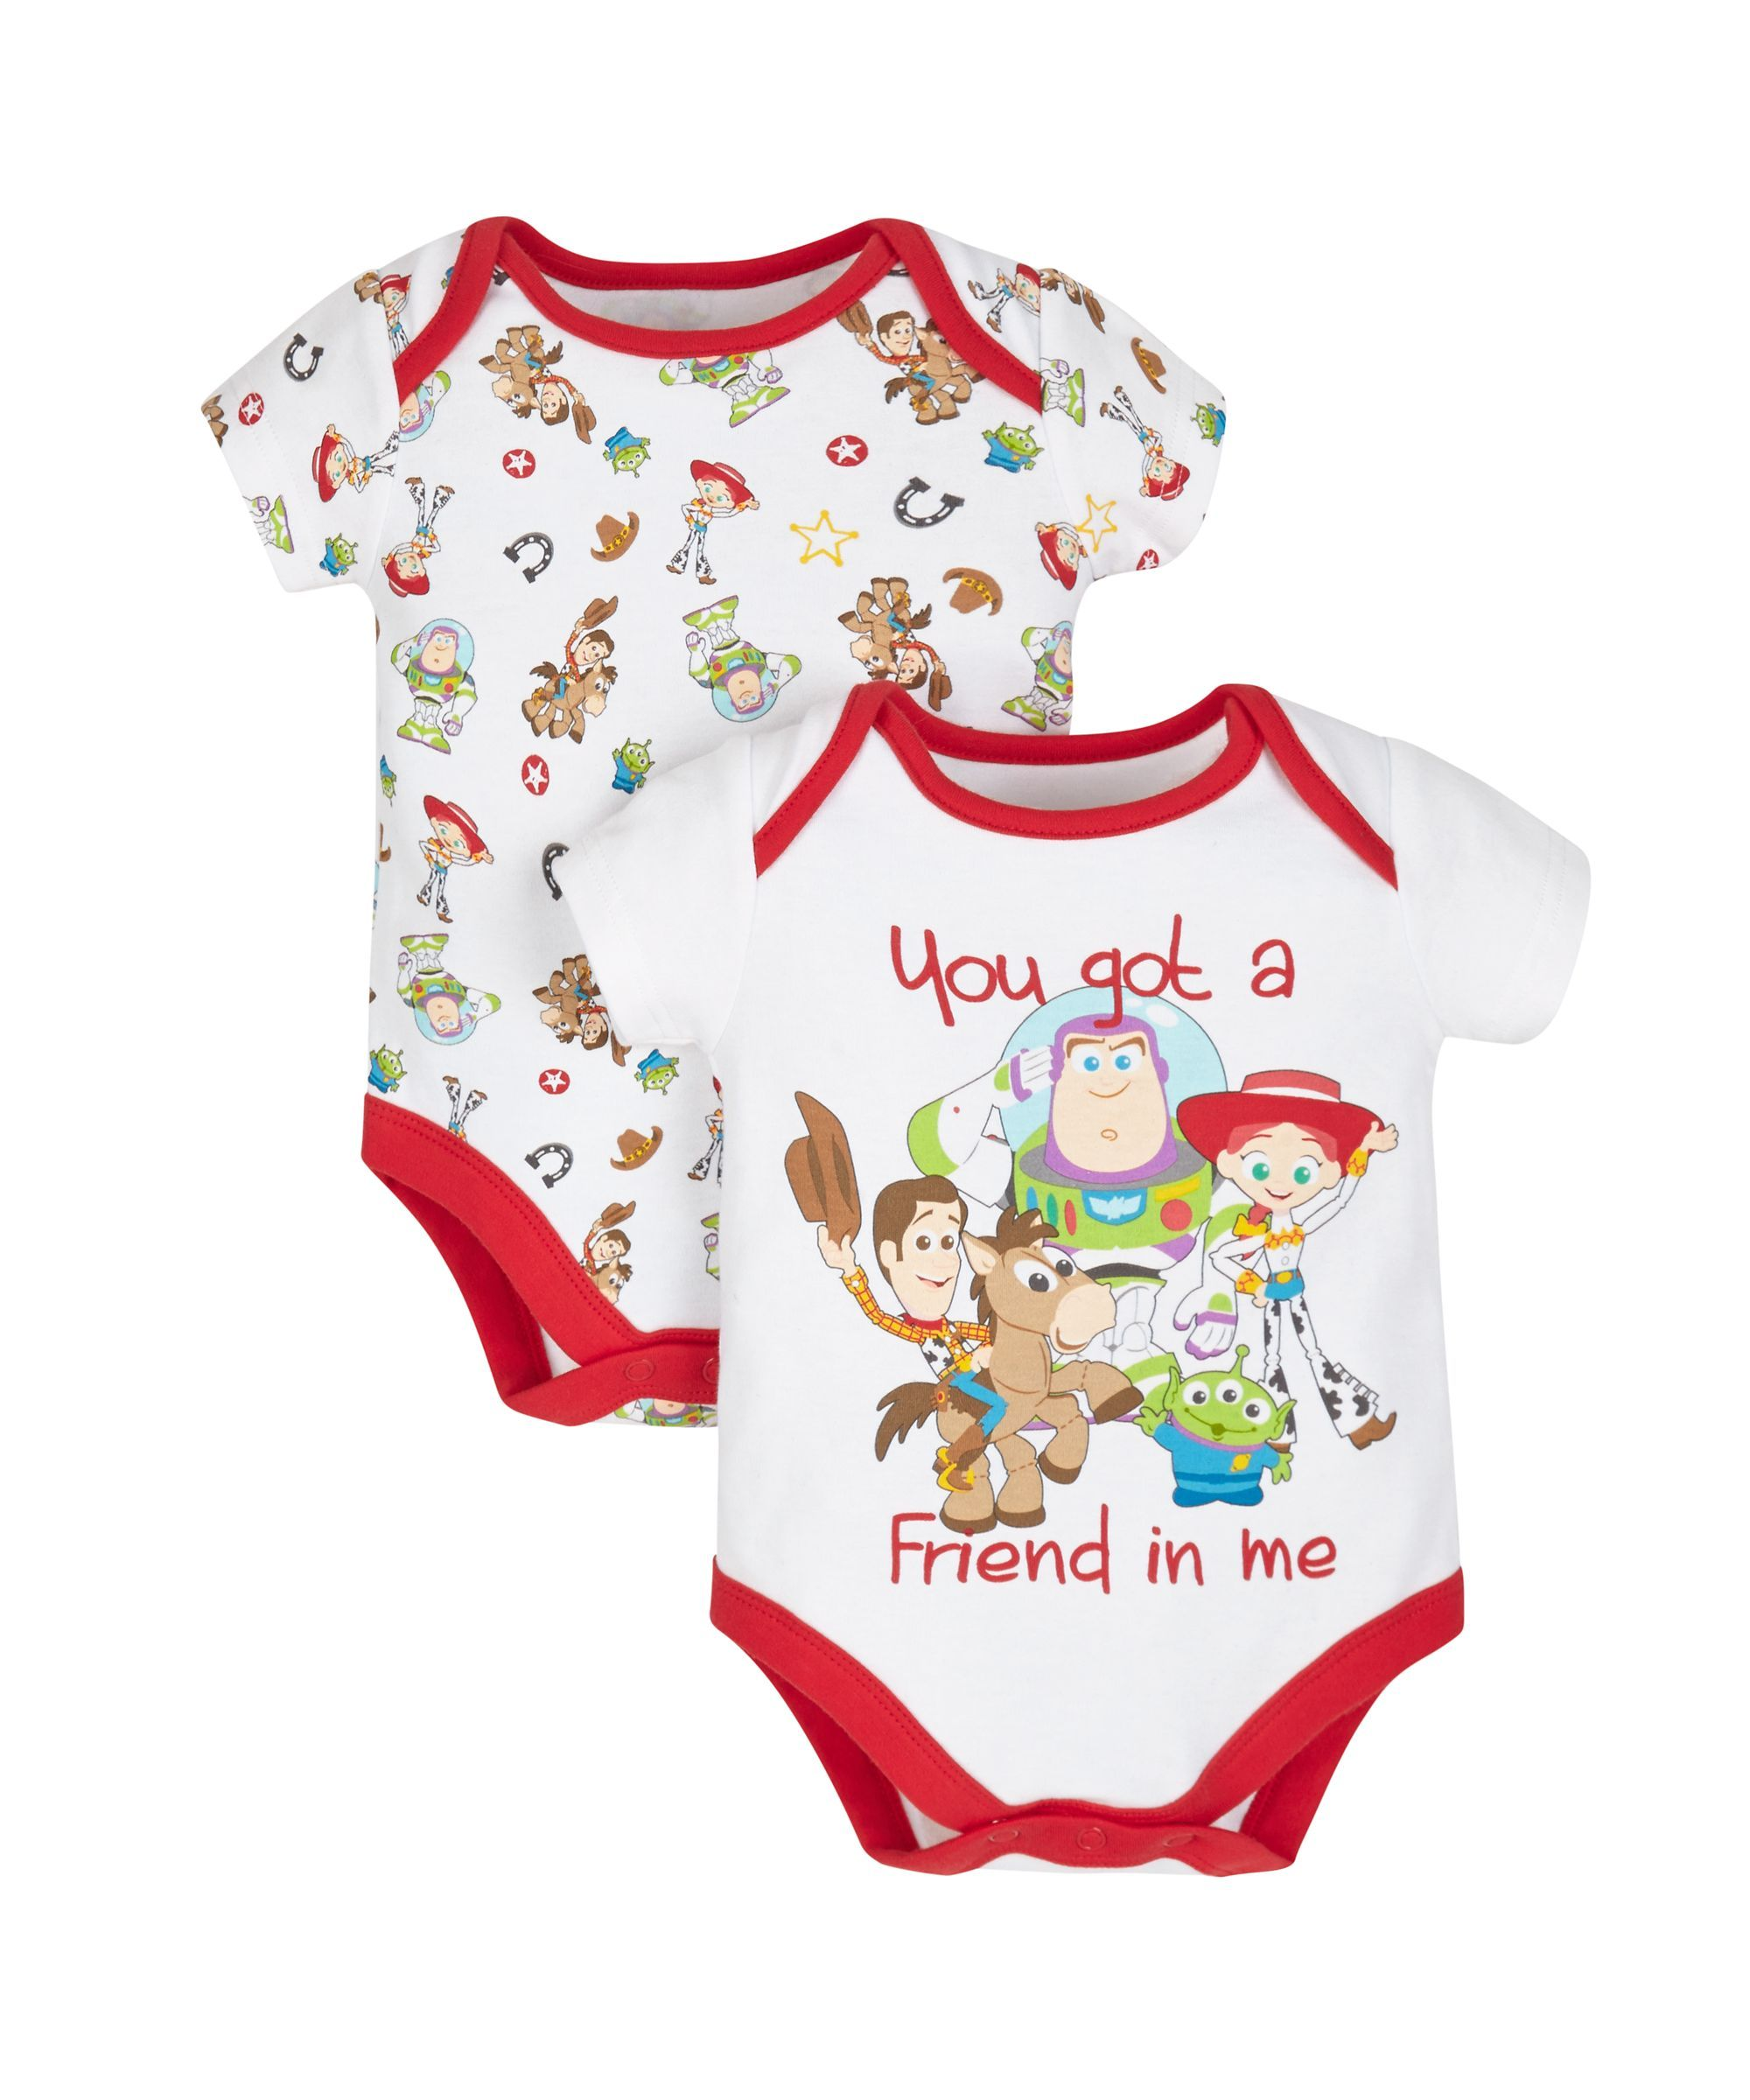 776bdbc5f Disney Toy Story Bodysuits - 2 Pack | Nursery Ideas | Disney baby ...